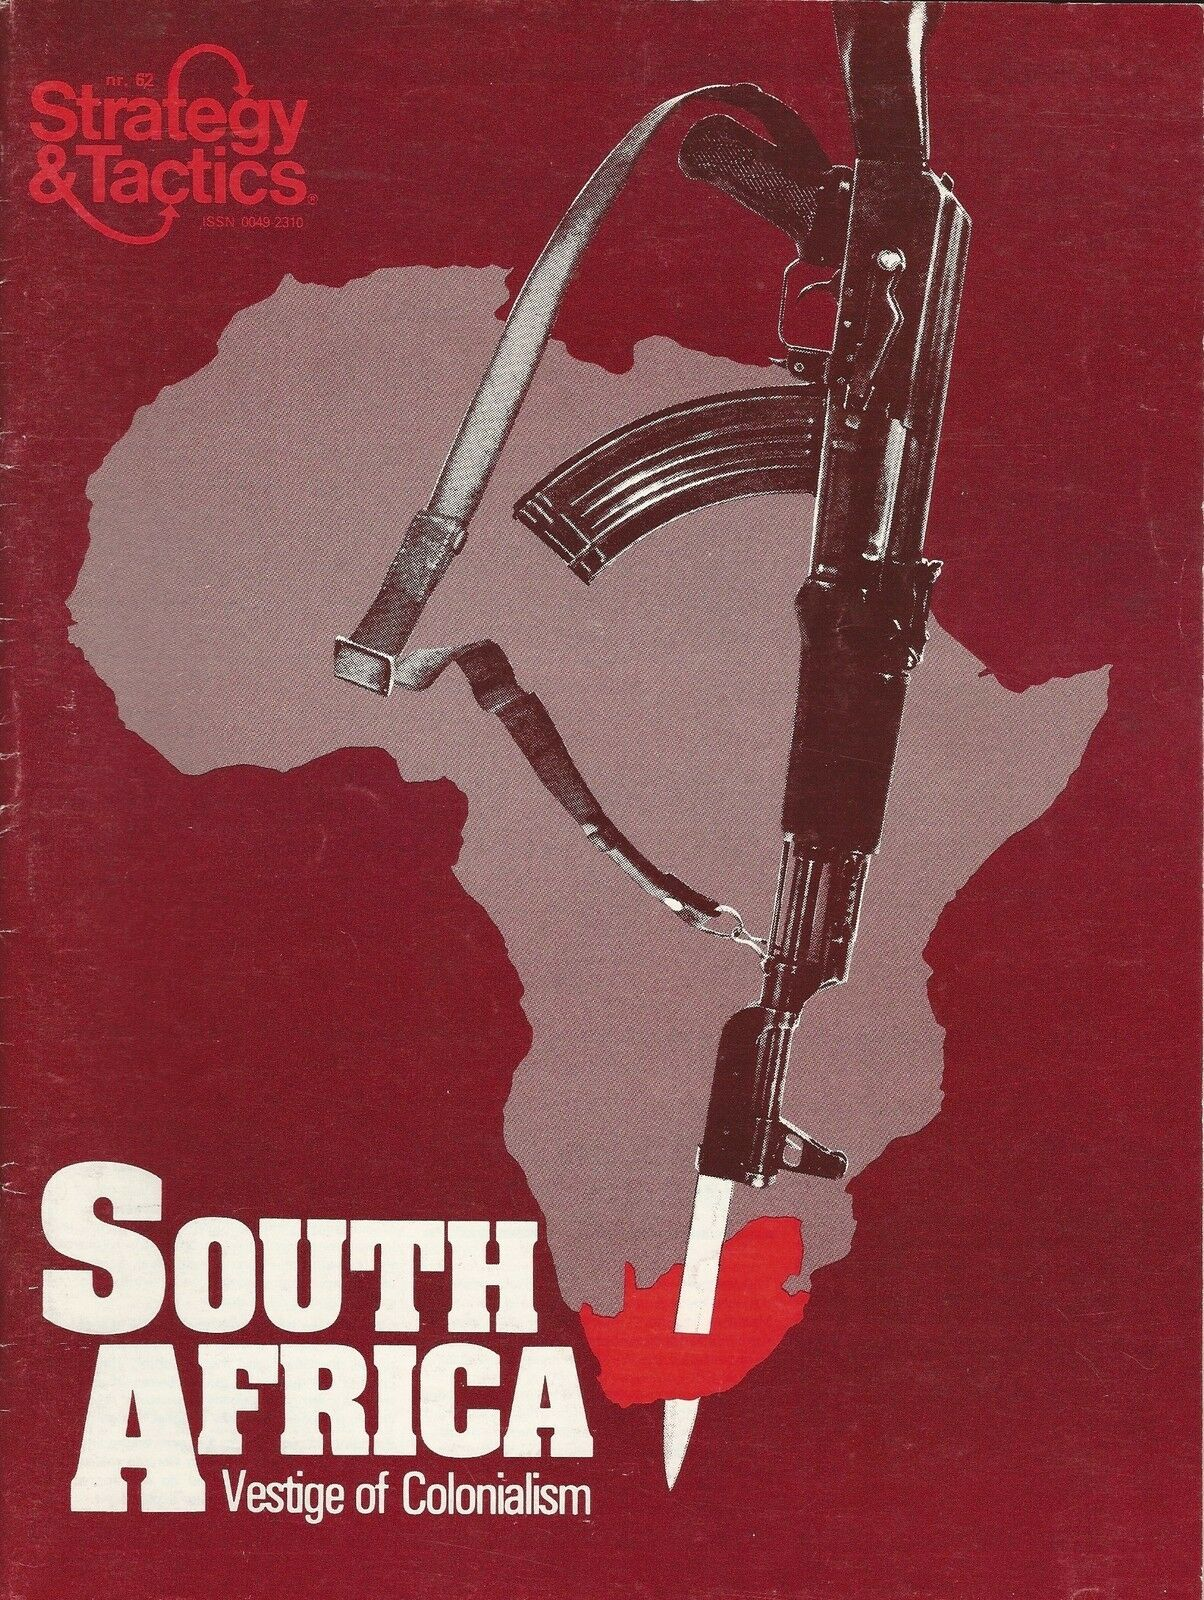 Strategy & Tactics S&T South Africa - Vestige of Colonialism Unpunched  FS